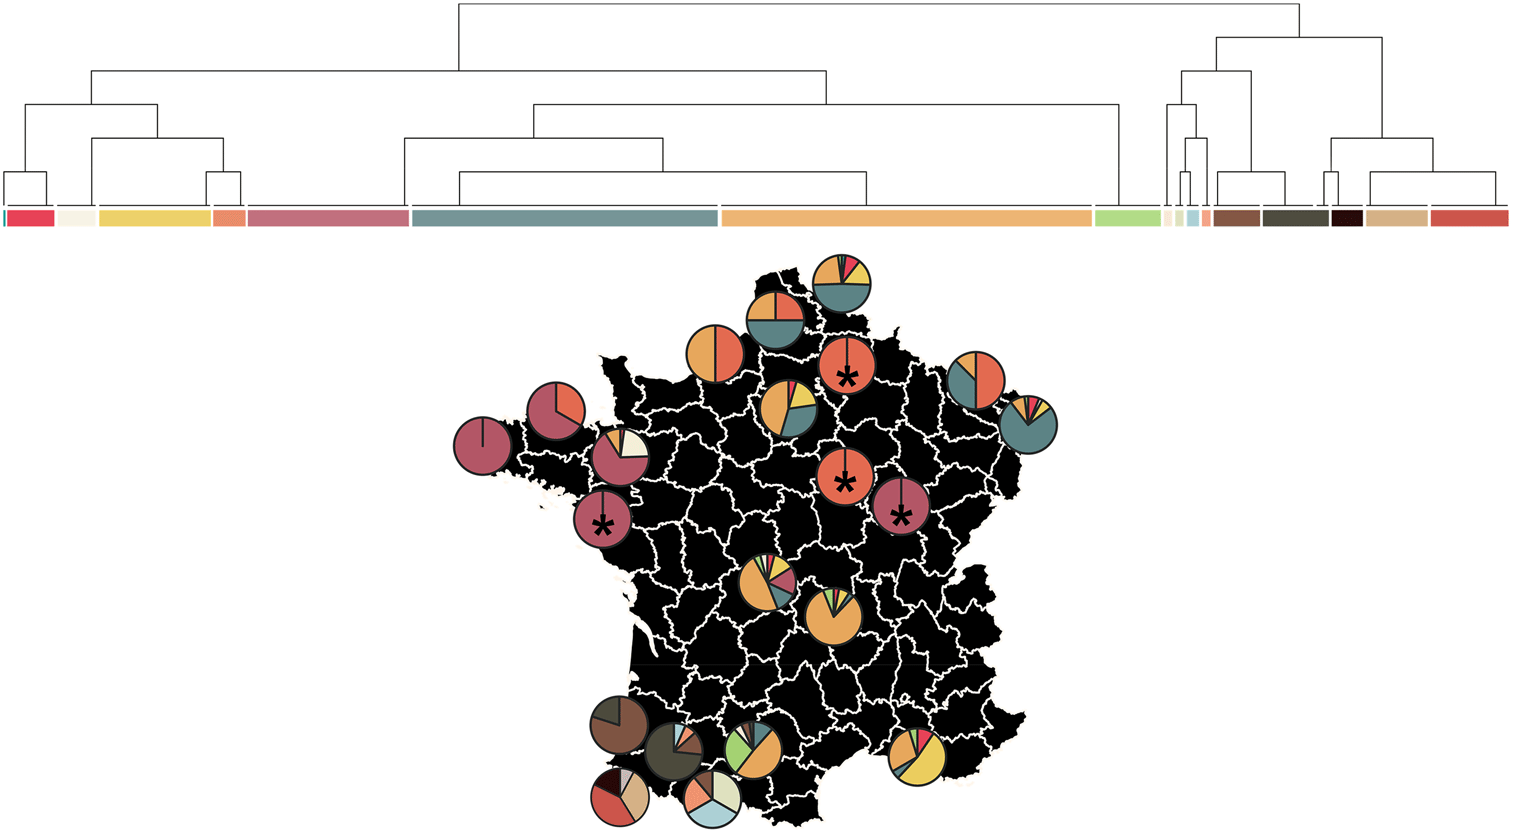 biagini-2020-france-structure-tree-basques-brittany